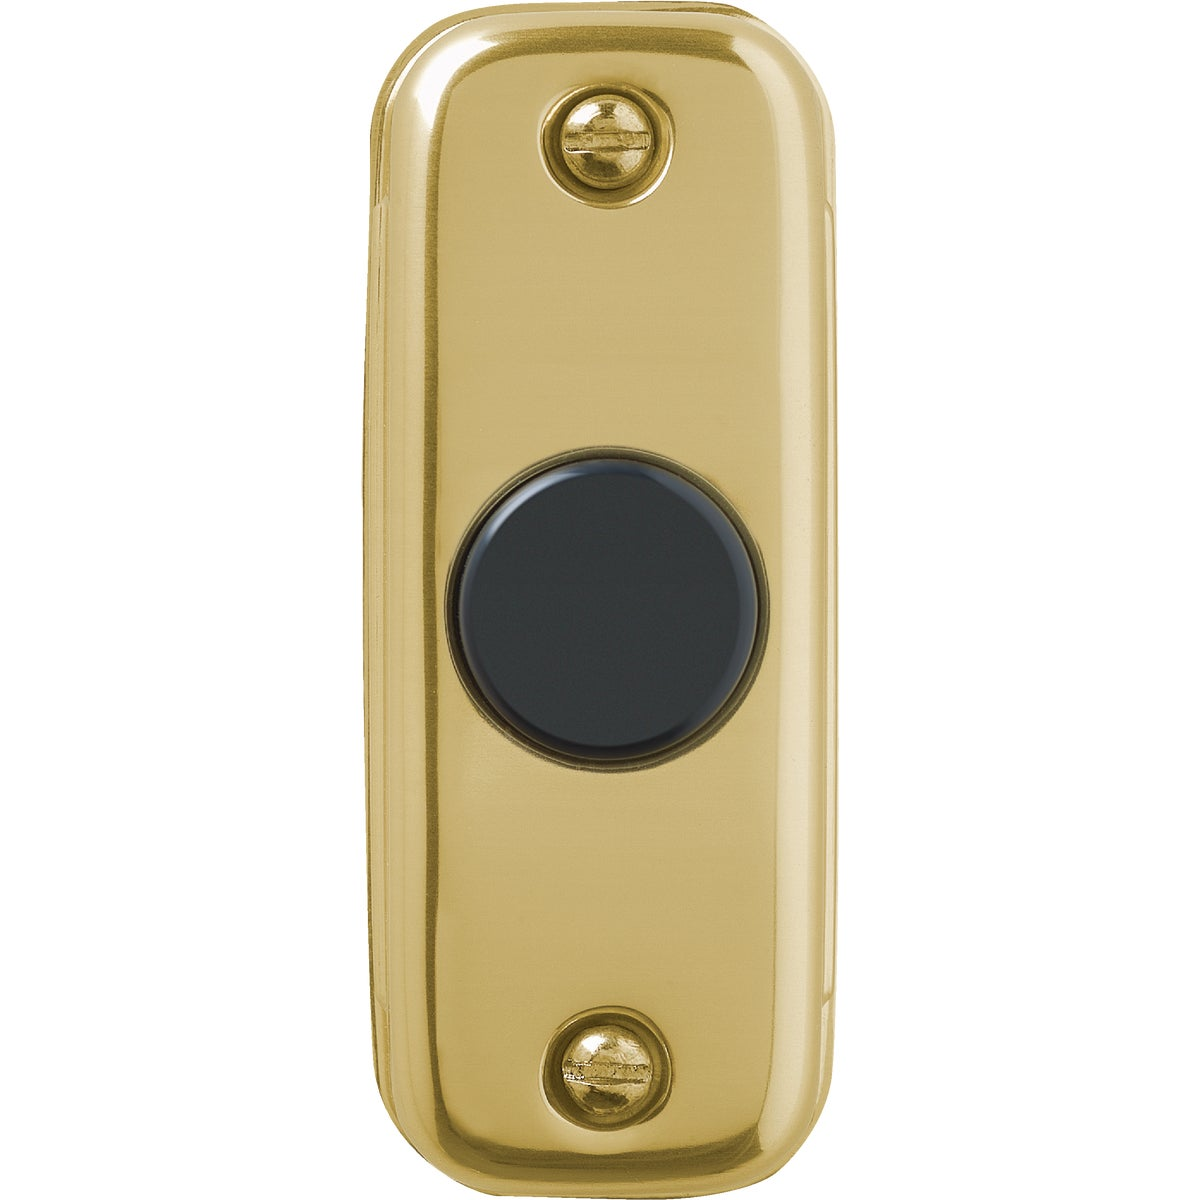 GOLD PUSH-BUTTON - DH1805 by Thomas & Betts